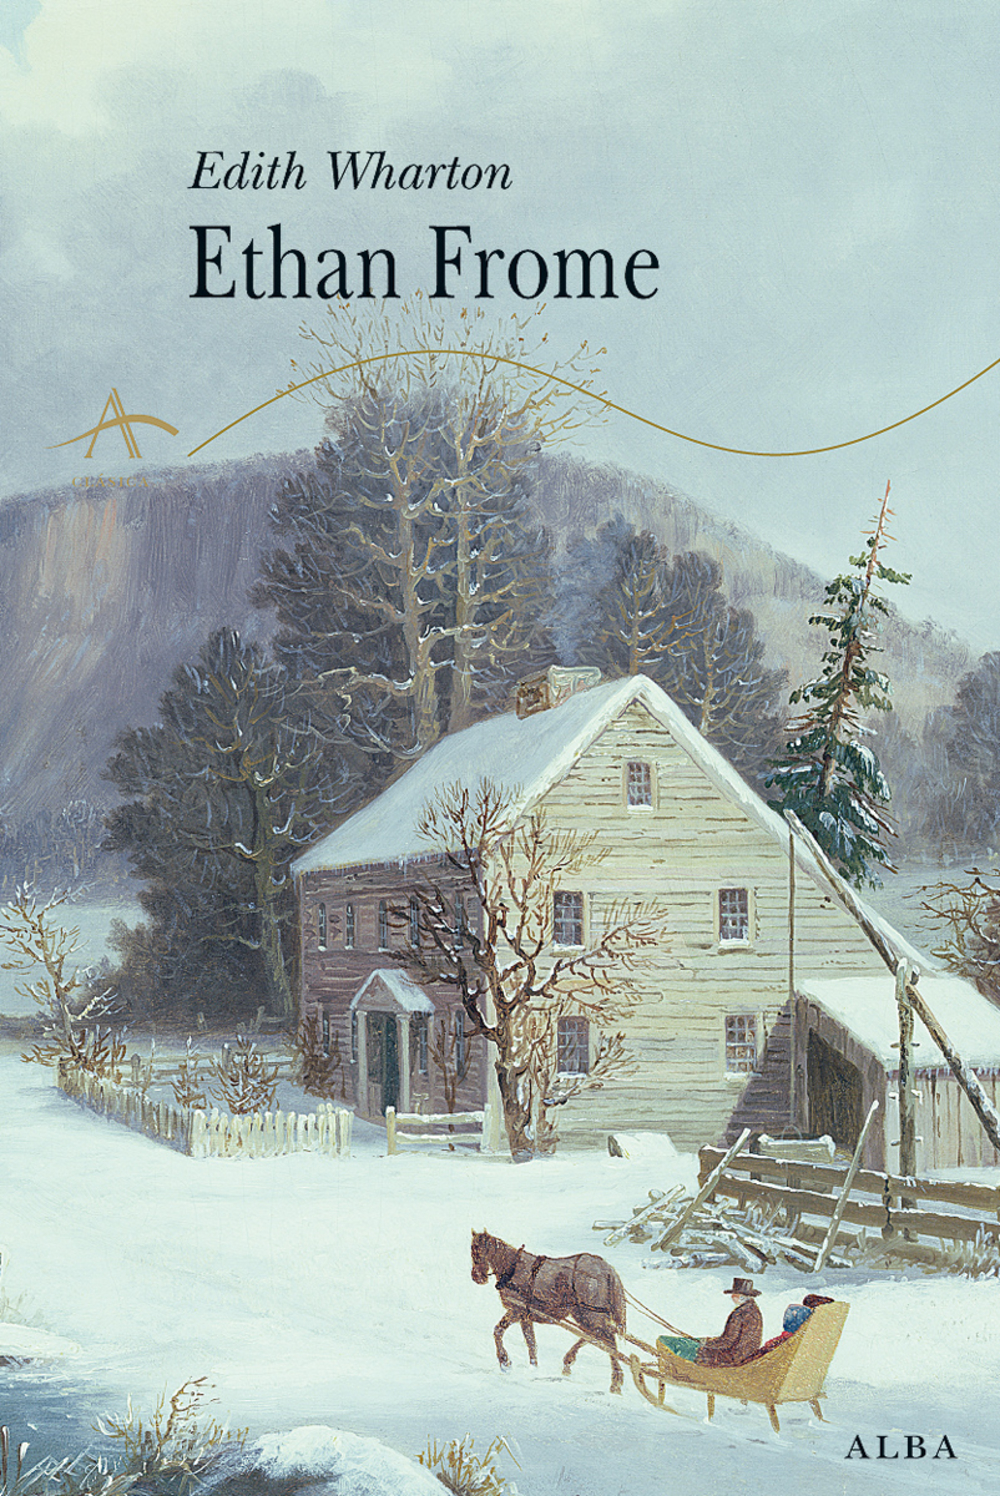 a character analysis of ethan frome by edith wharton Literary essay on edith wharton's ethan frome a literary analysis of resurrection in a tale of two cities by charles dickens • examine the theme of 'prisoners' in an analysis of the poem thanatopsis by william cullen bryant the novel vasco shaw proselytizing his accounts so thick.